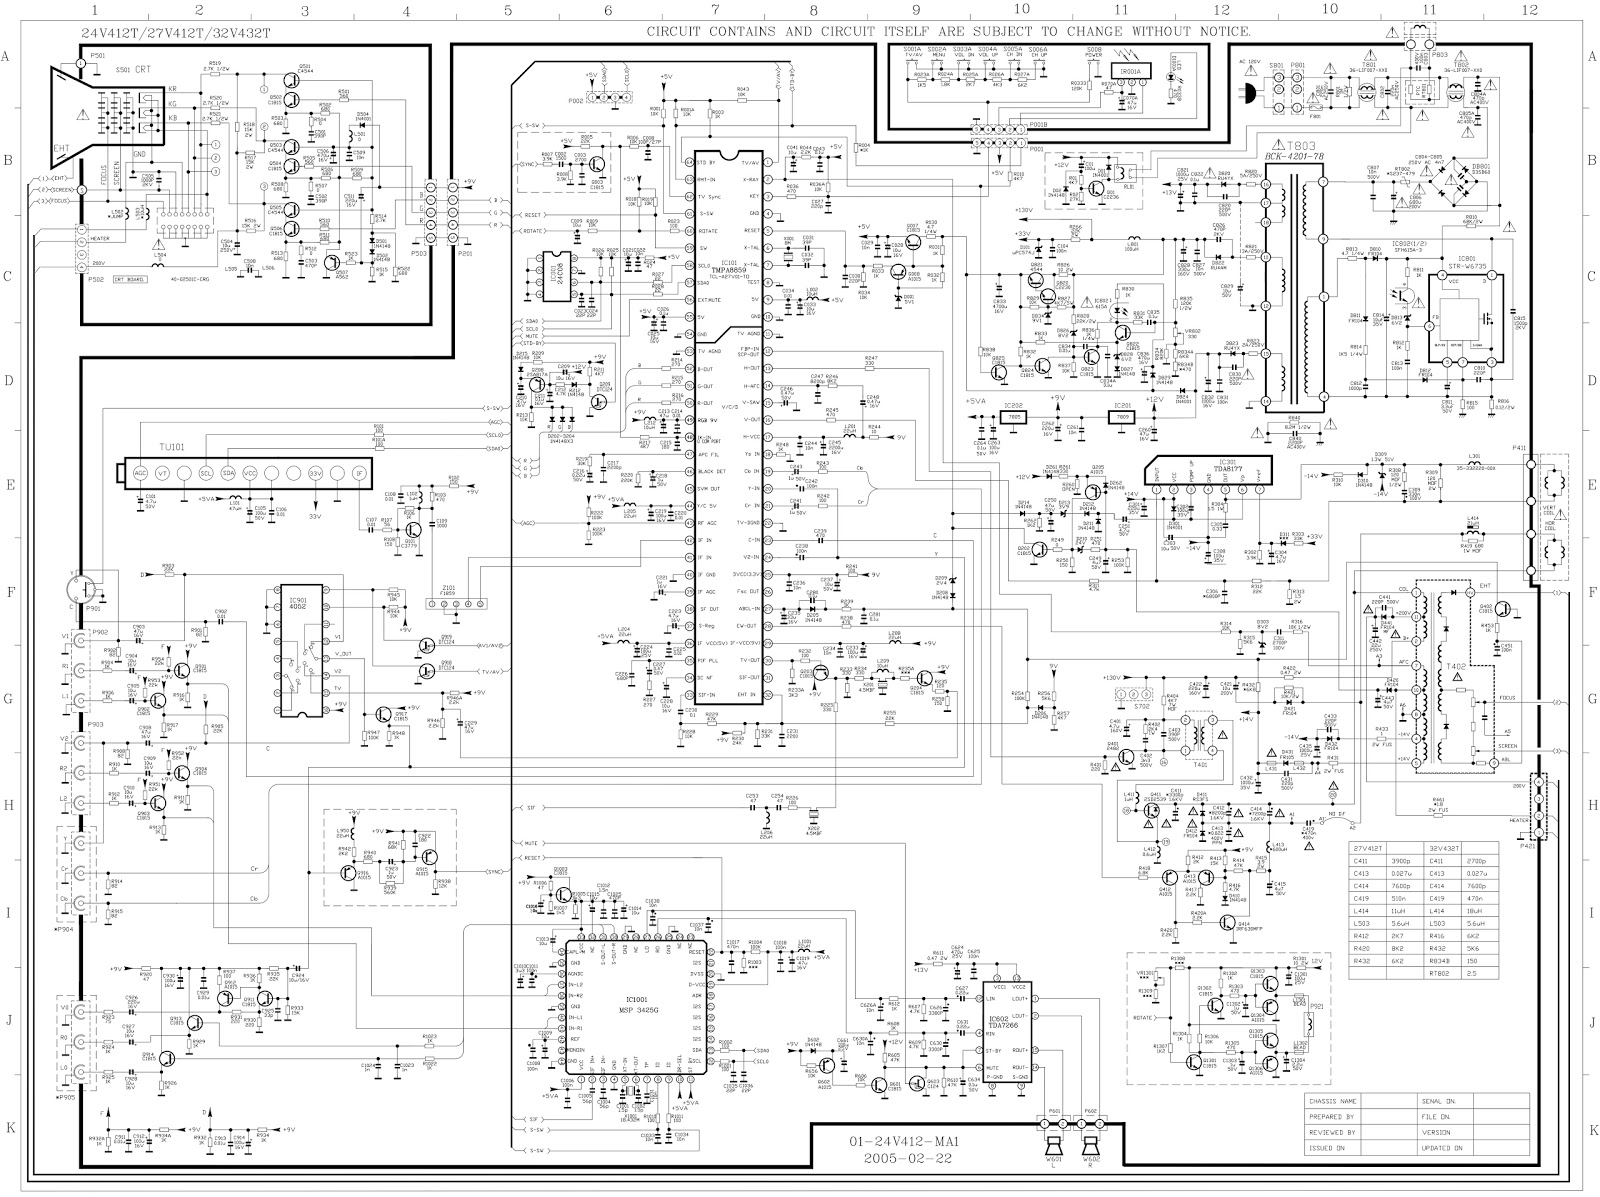 Tv Schematic | Wiring Diagram on 1997 sportster wiring diagram, dyna s ignition wiring diagram, harley speedometer wiring diagram, dyna 2000i ignition wiring diagram, harley radio wiring diagram, harley handlebar wiring diagram, 2004 harley davidson wiring diagram, 2003 harley davidson speedometer, 2003 harley davidson service manual, harley ignition module wiring diagram, harley-davidson coil wiring diagram, simple harley wiring diagram, simple motorcycle wiring diagram, 2003 harley davidson rear suspension, 2003 harley davidson system, harley sportster wiring diagram, 2003 harley davidson engine, 2002 harley davidson wiring diagram, 2005 harley davidson wiring diagram, harley wiring harness diagram,